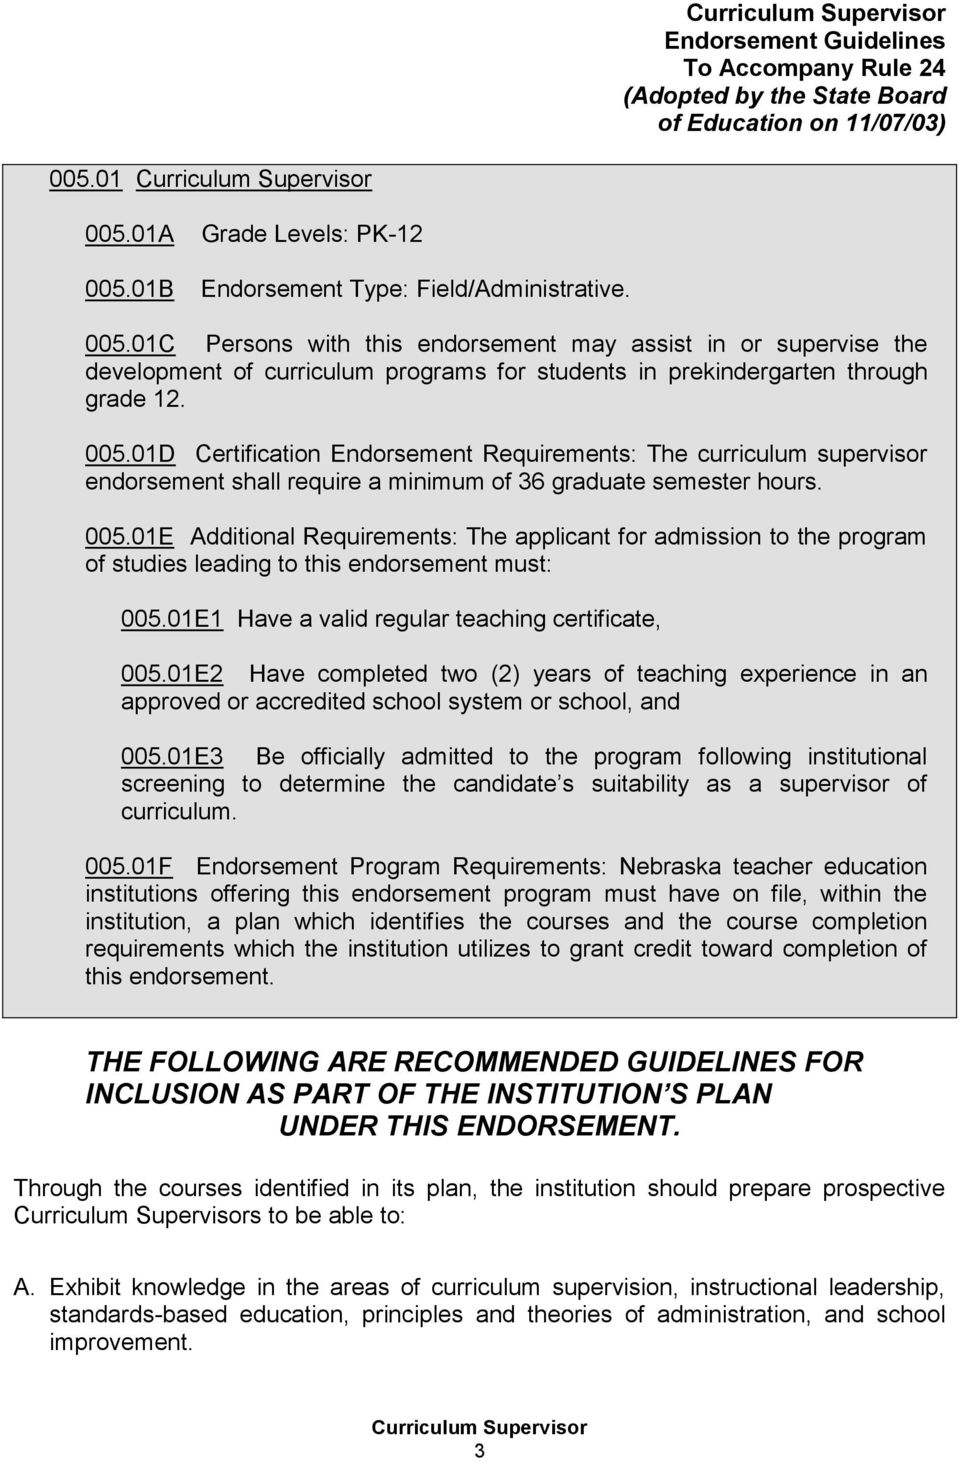 Guidelines Recommended For Use With Rule 24 Endorsements Pdf